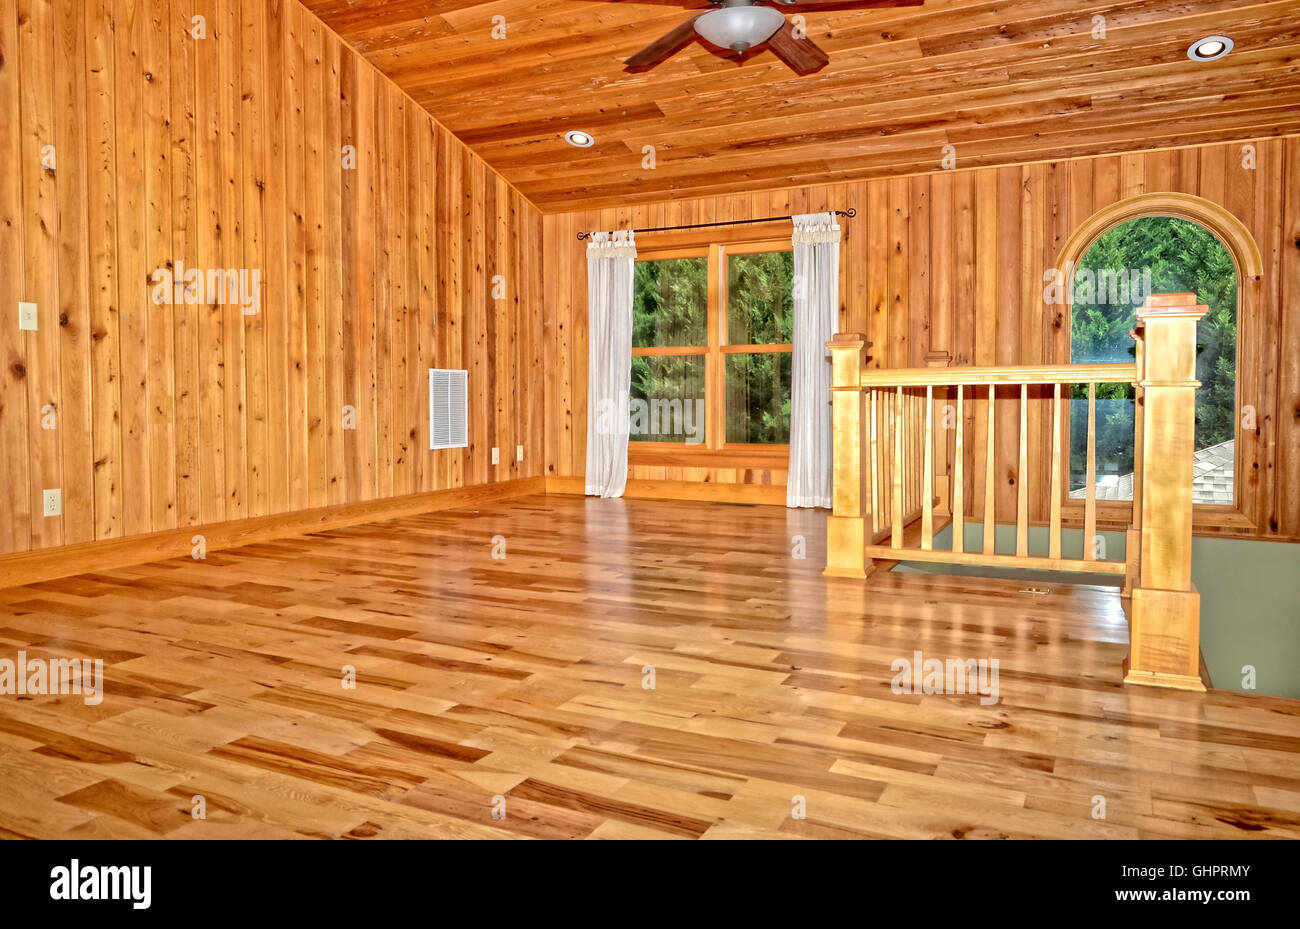 An empty room in a new modern home.  Hickory floors, cypress walls and ceiling and a stairway. - Stock Image